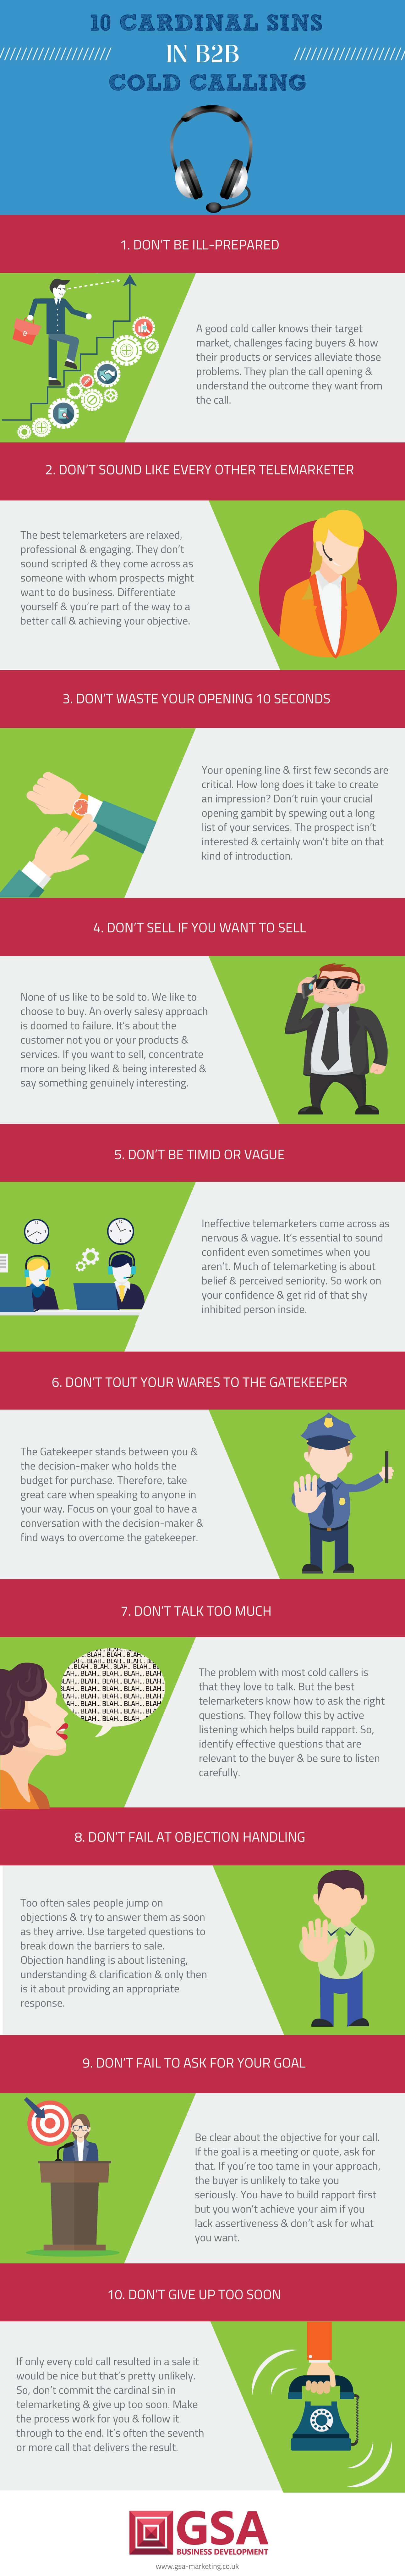 10 Cold Calling Cardinal Sins Infographic